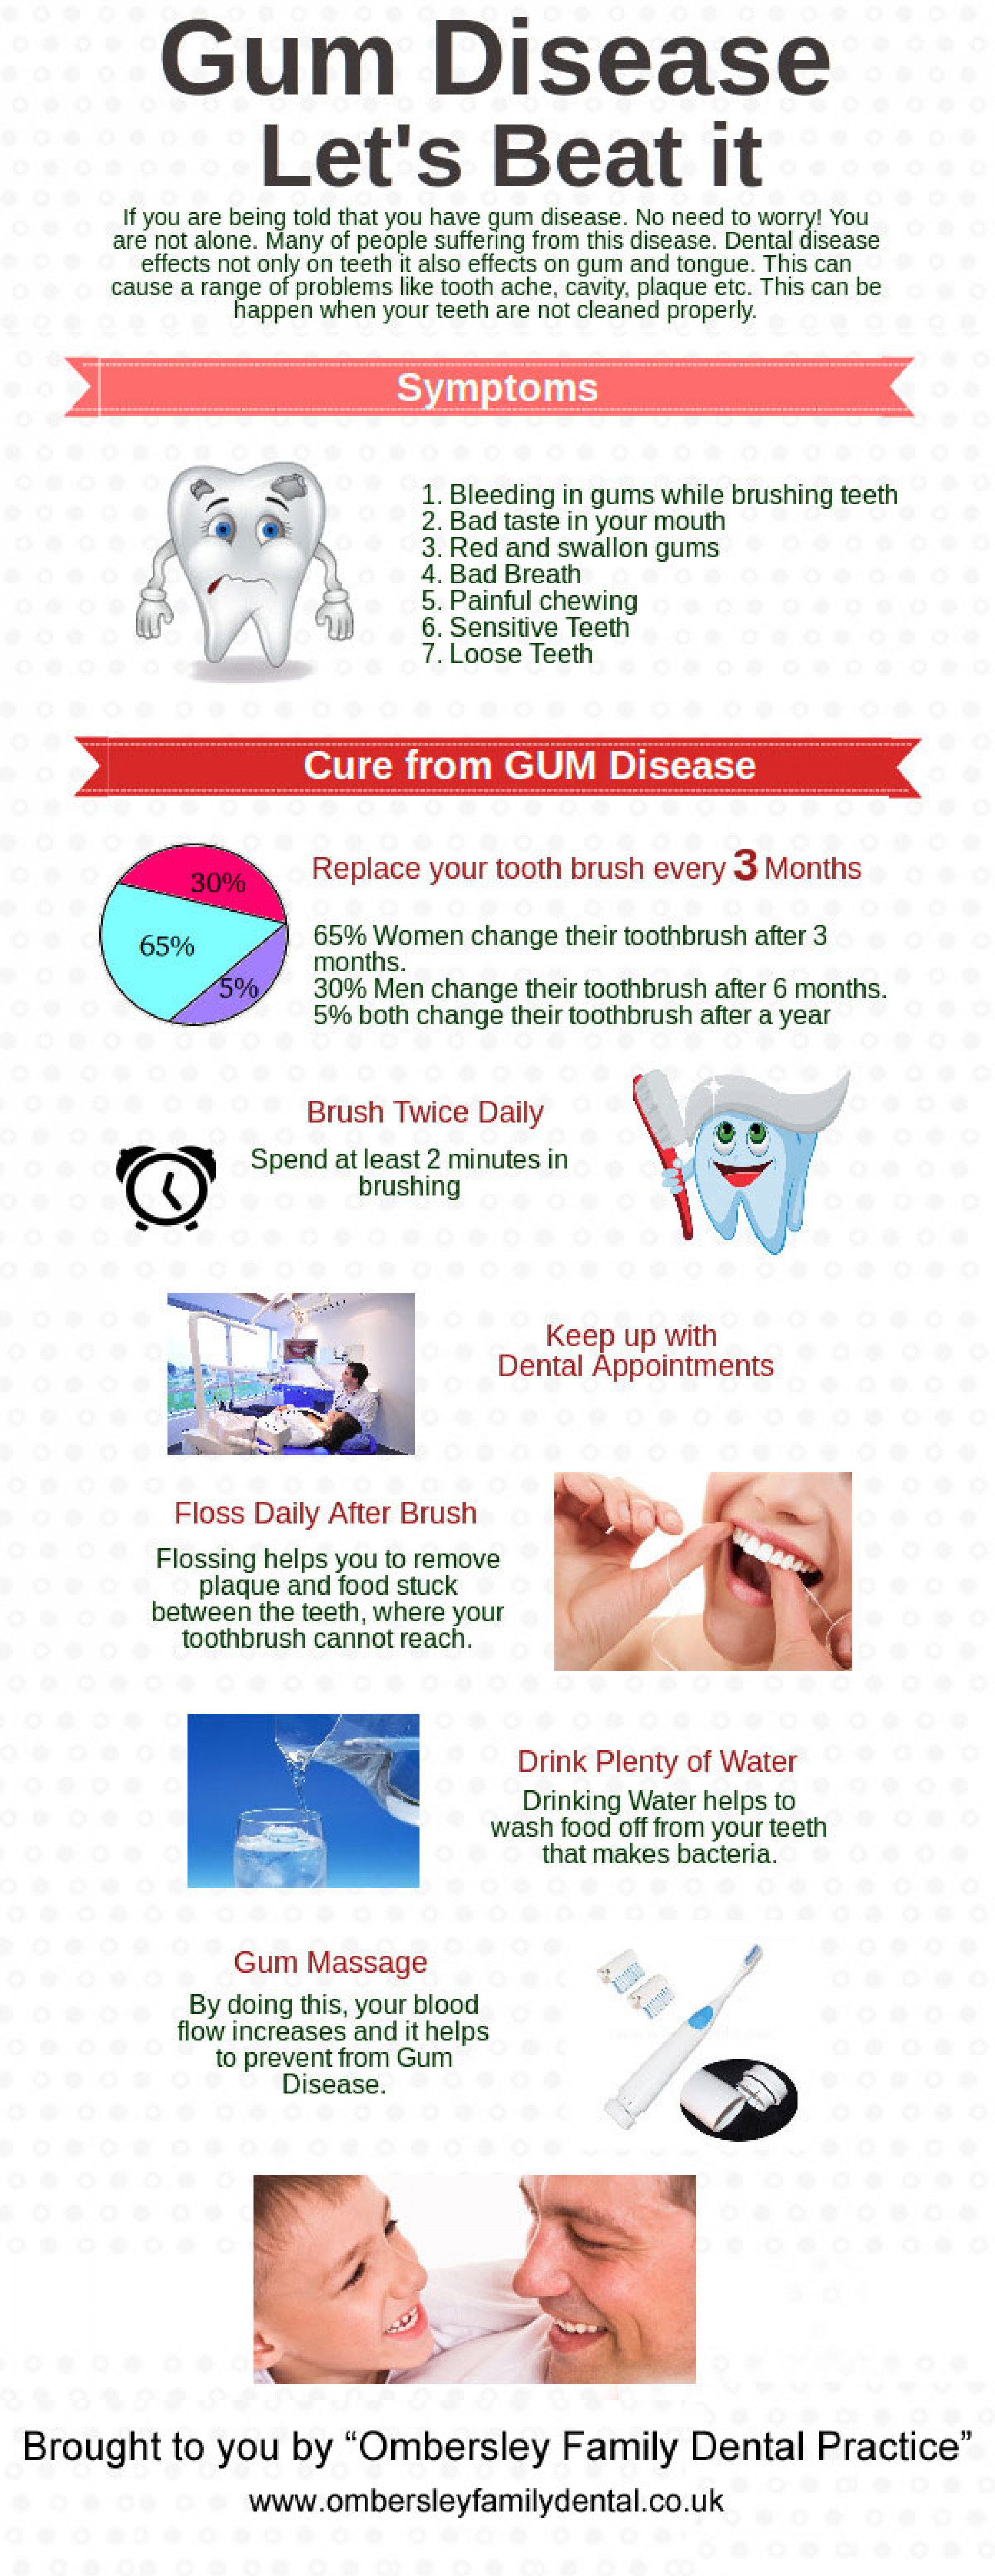 Symptoms of Gum Disease and its Cure Infographic